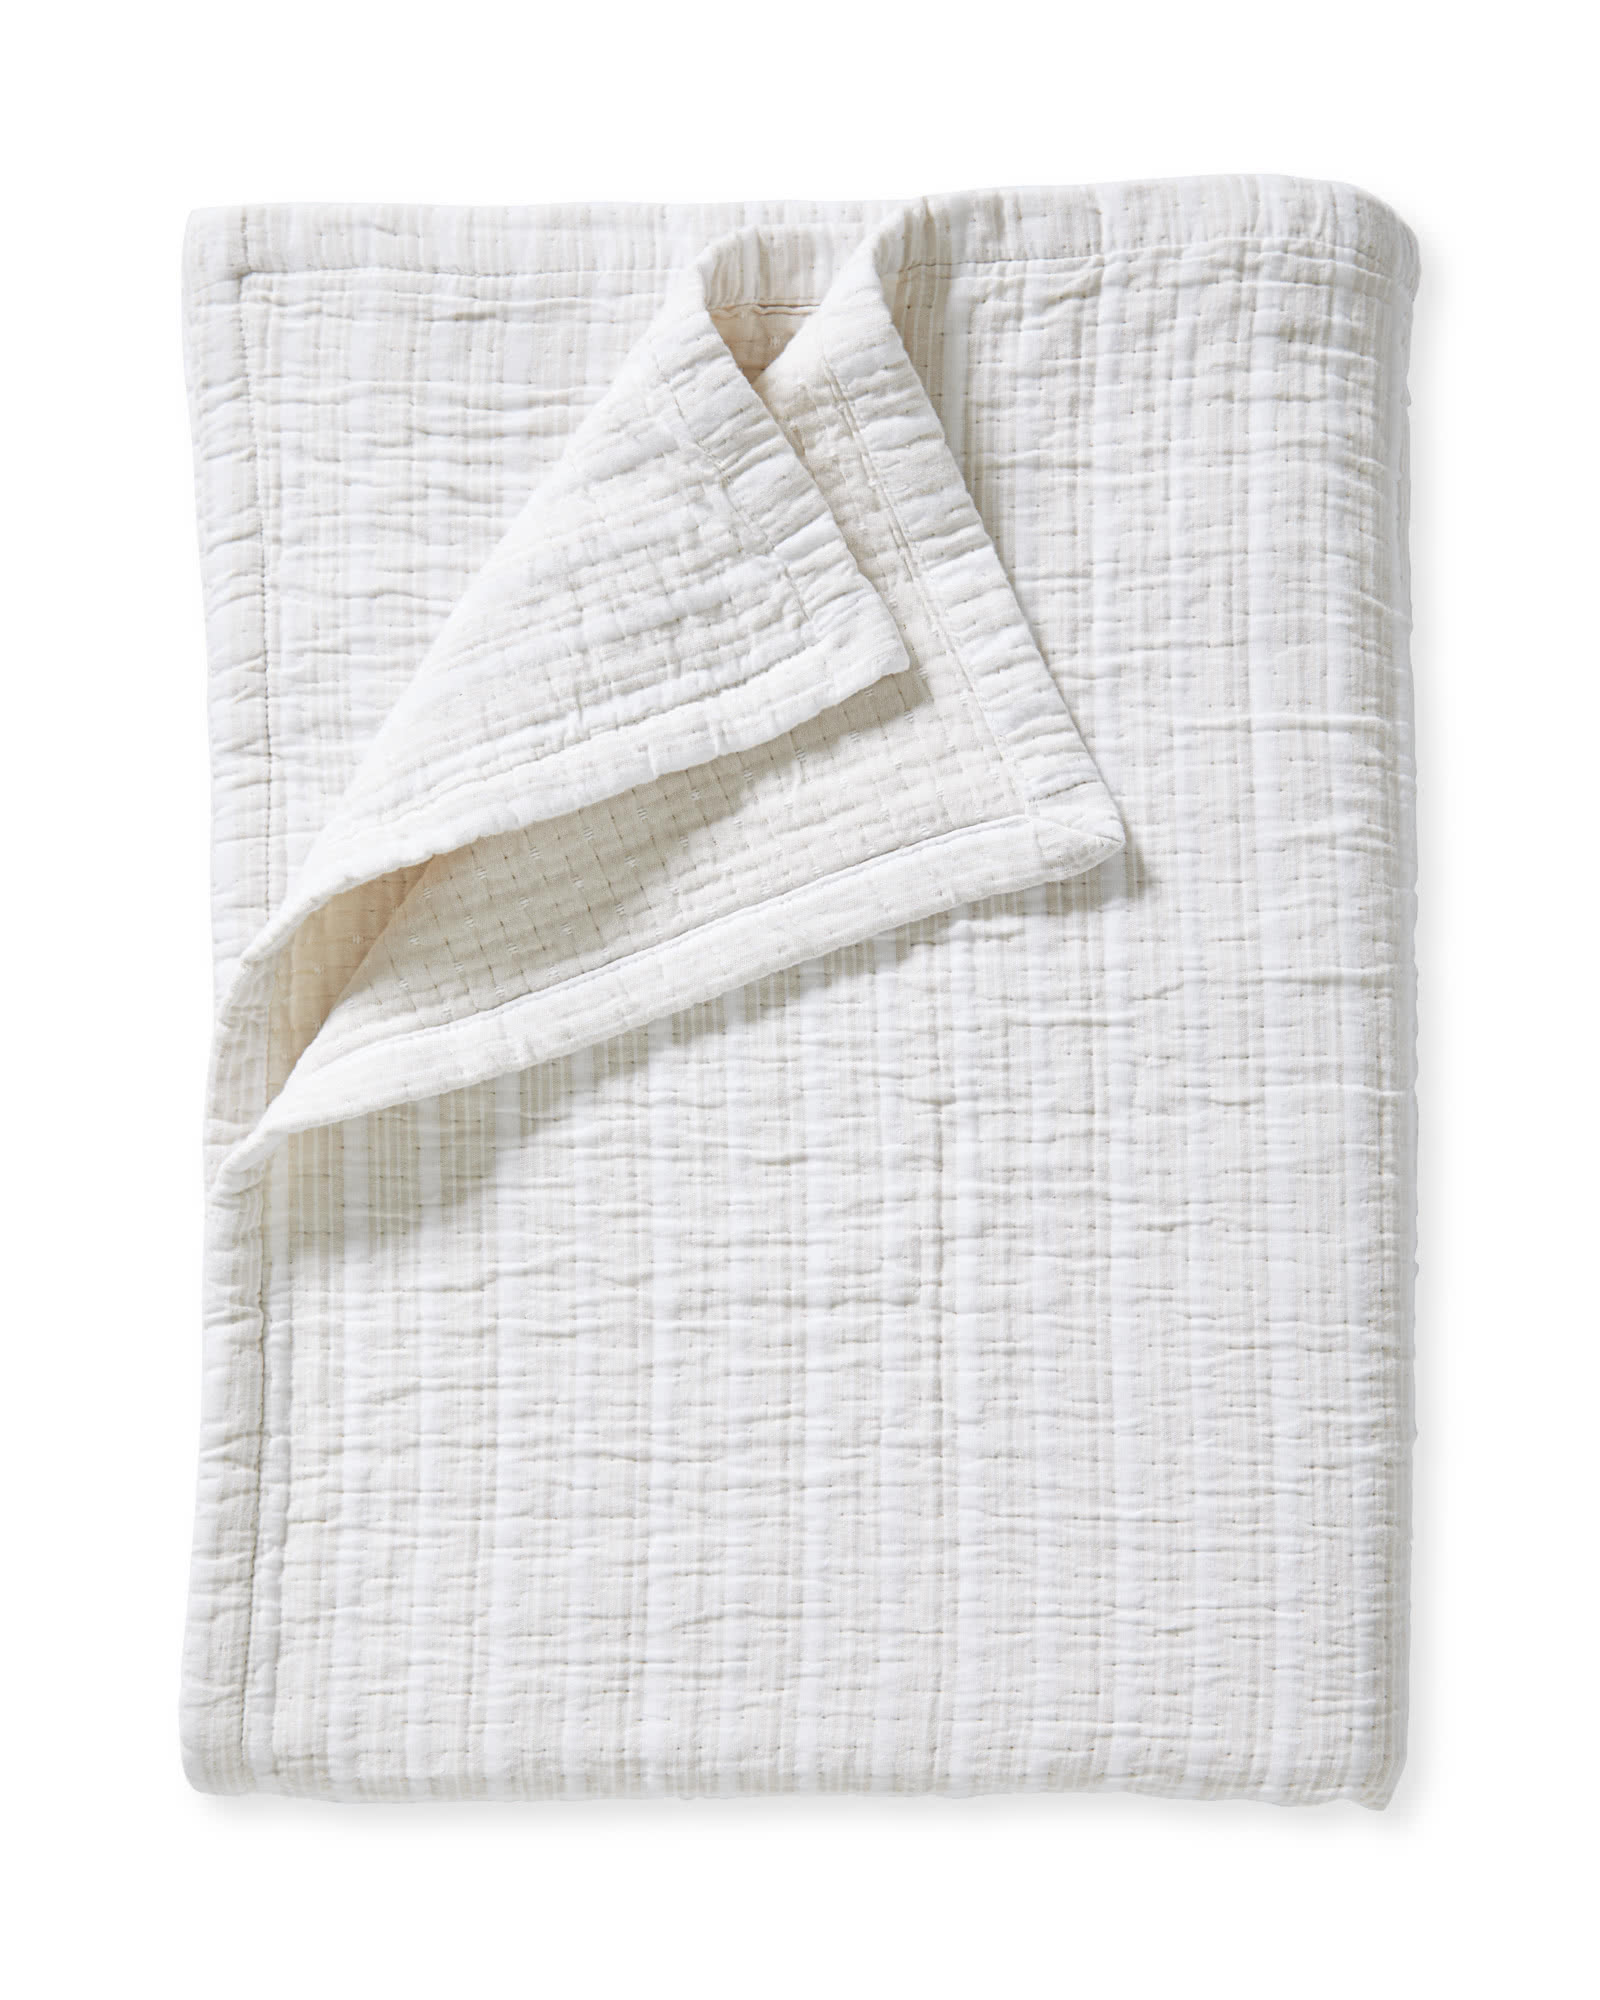 Carlyle Coverlet, Sand